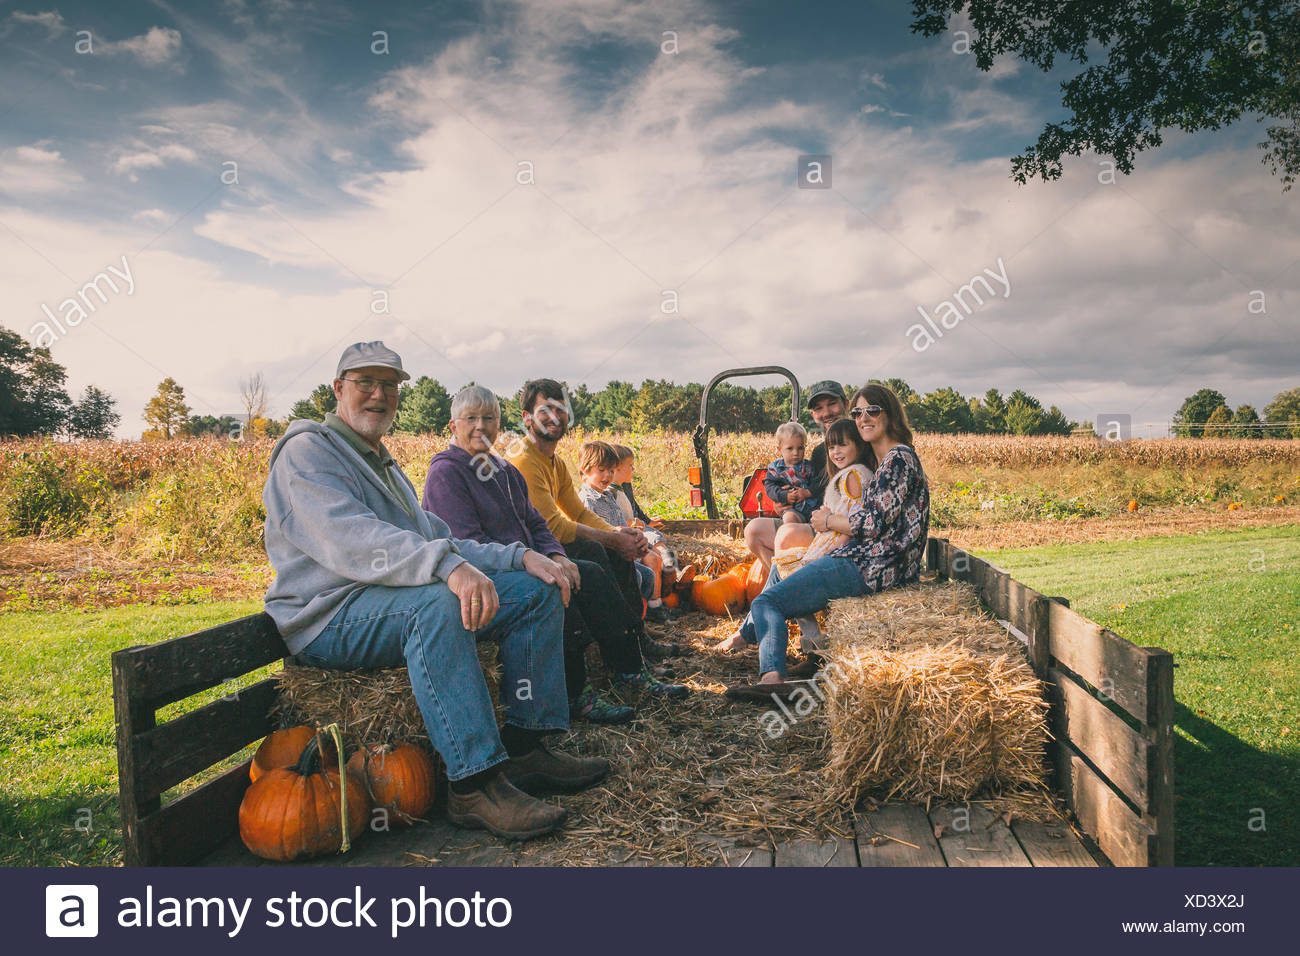 Extended family sitting in a hay wagon at a pumpkin patch Stock Photo